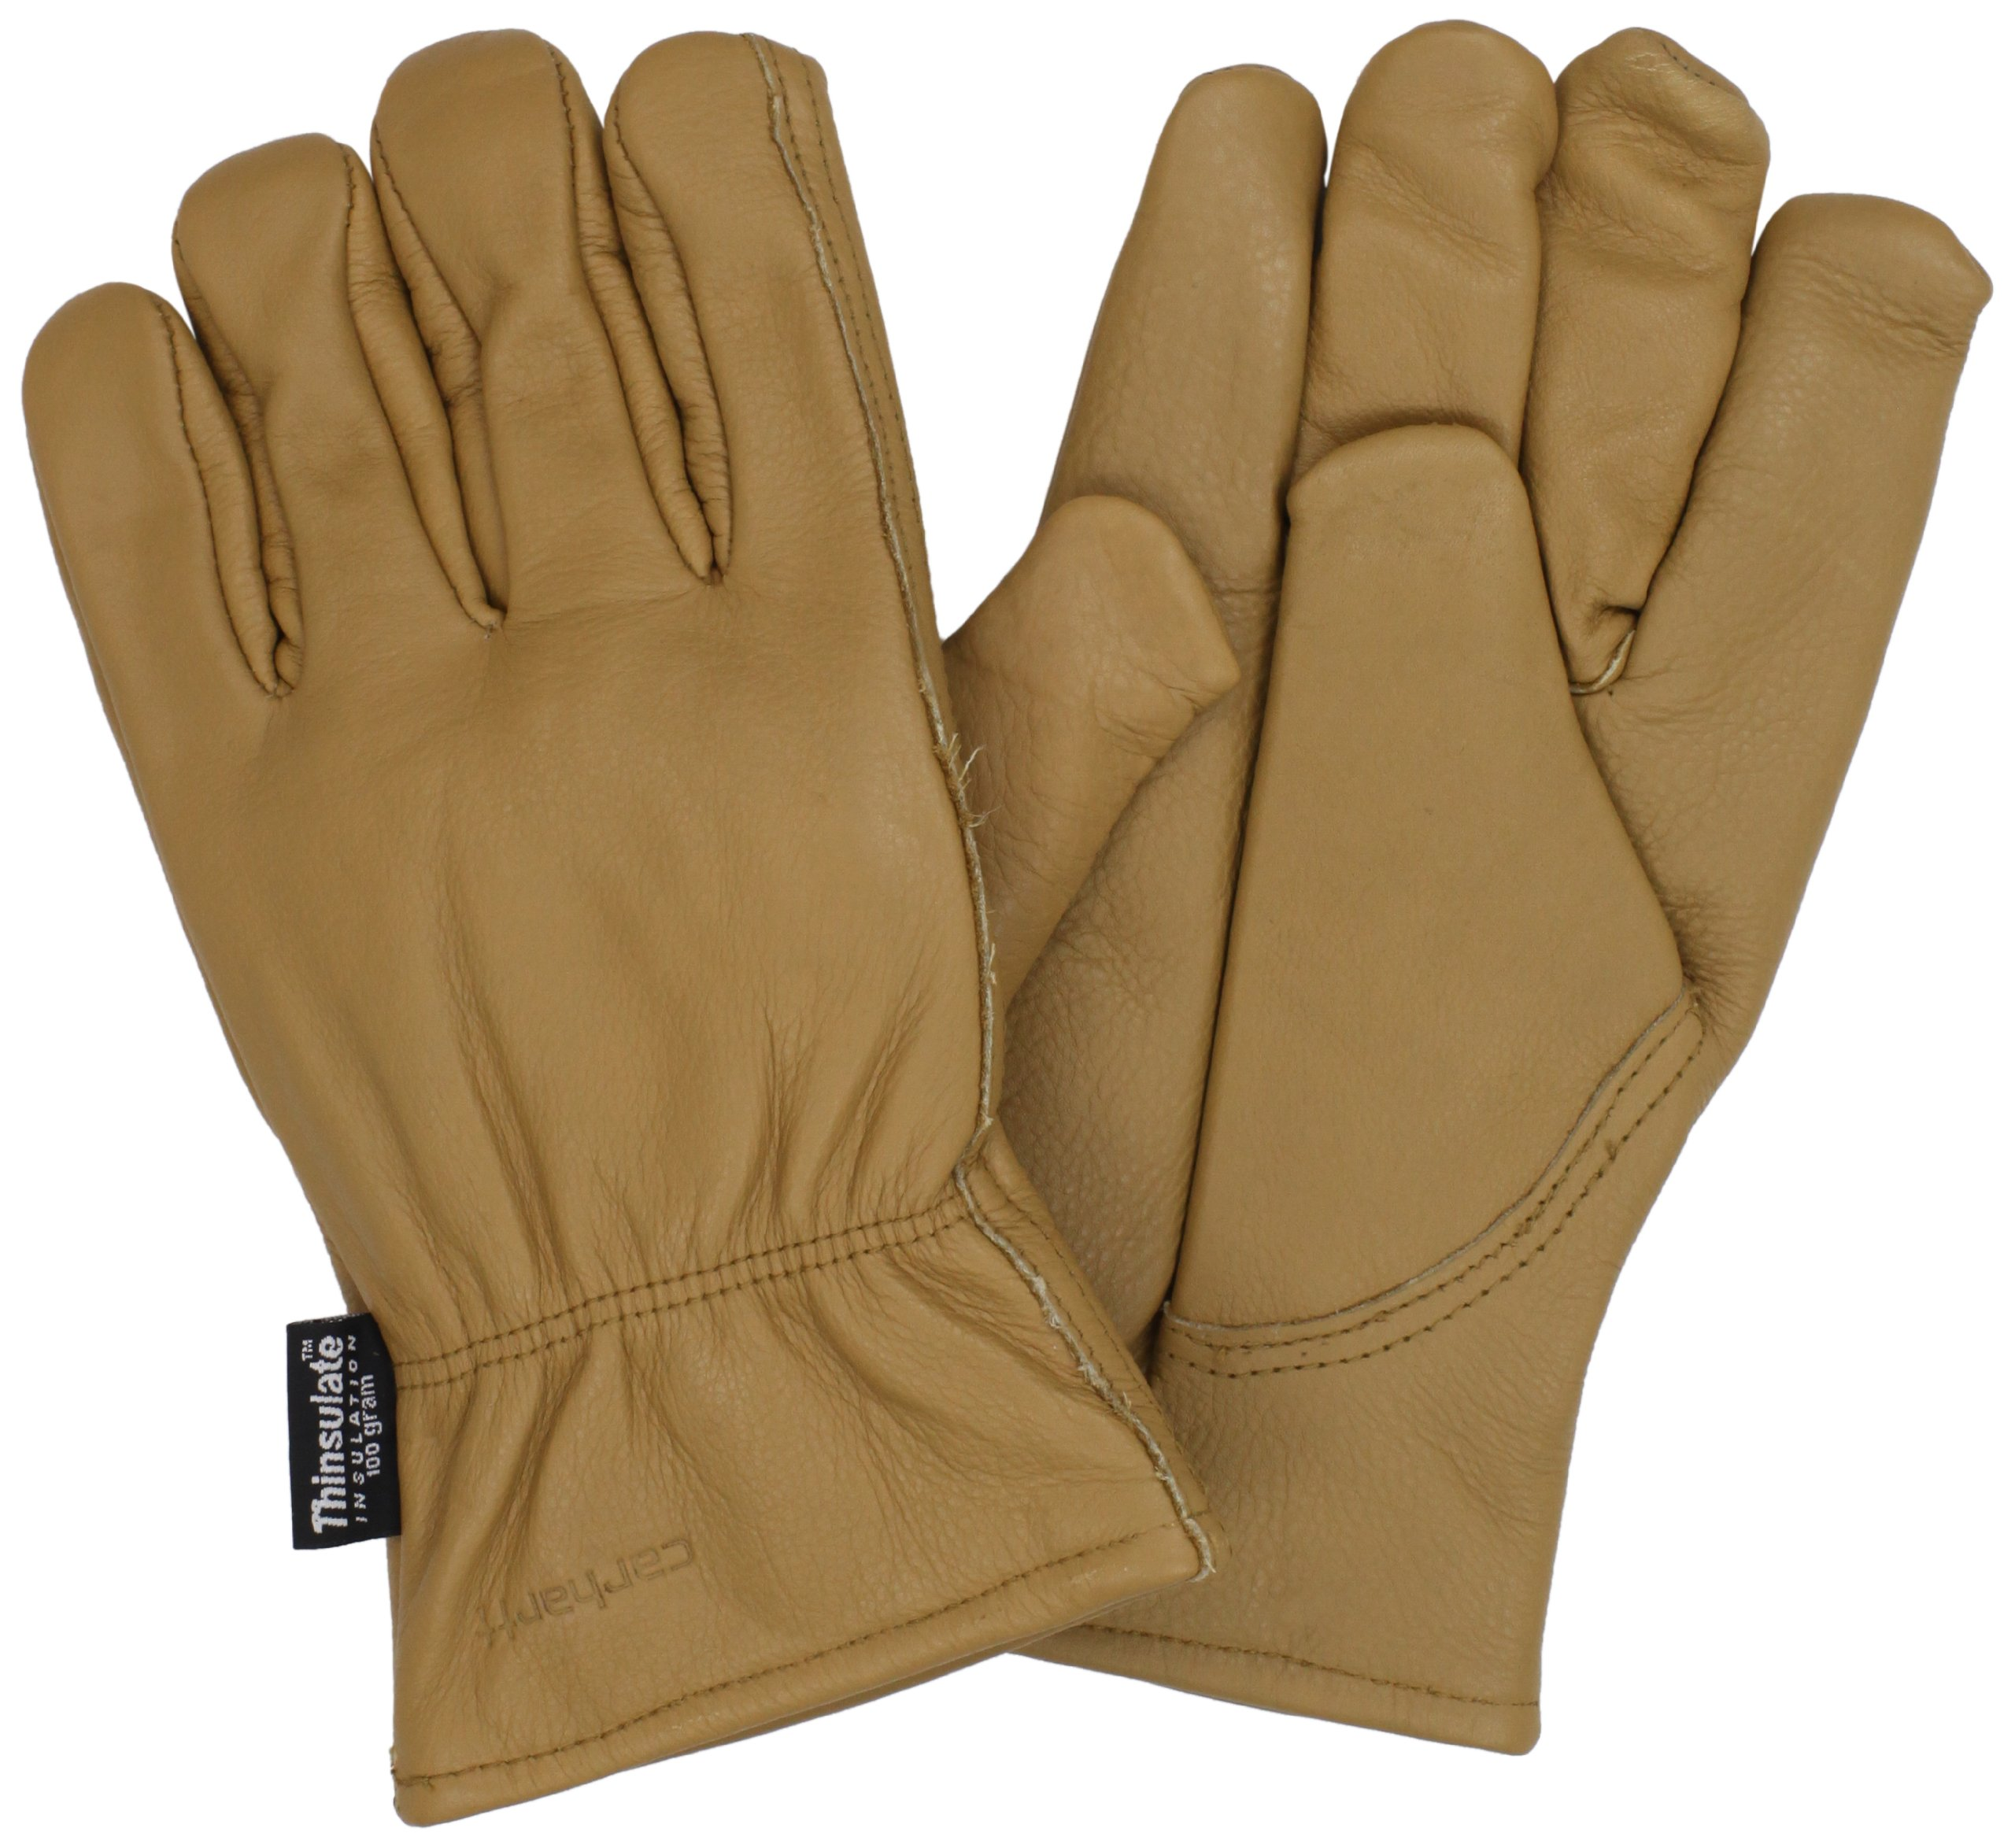 Carhartt Men's Insulated System 5 Driver Work Glove, Brown, Small by Carhartt